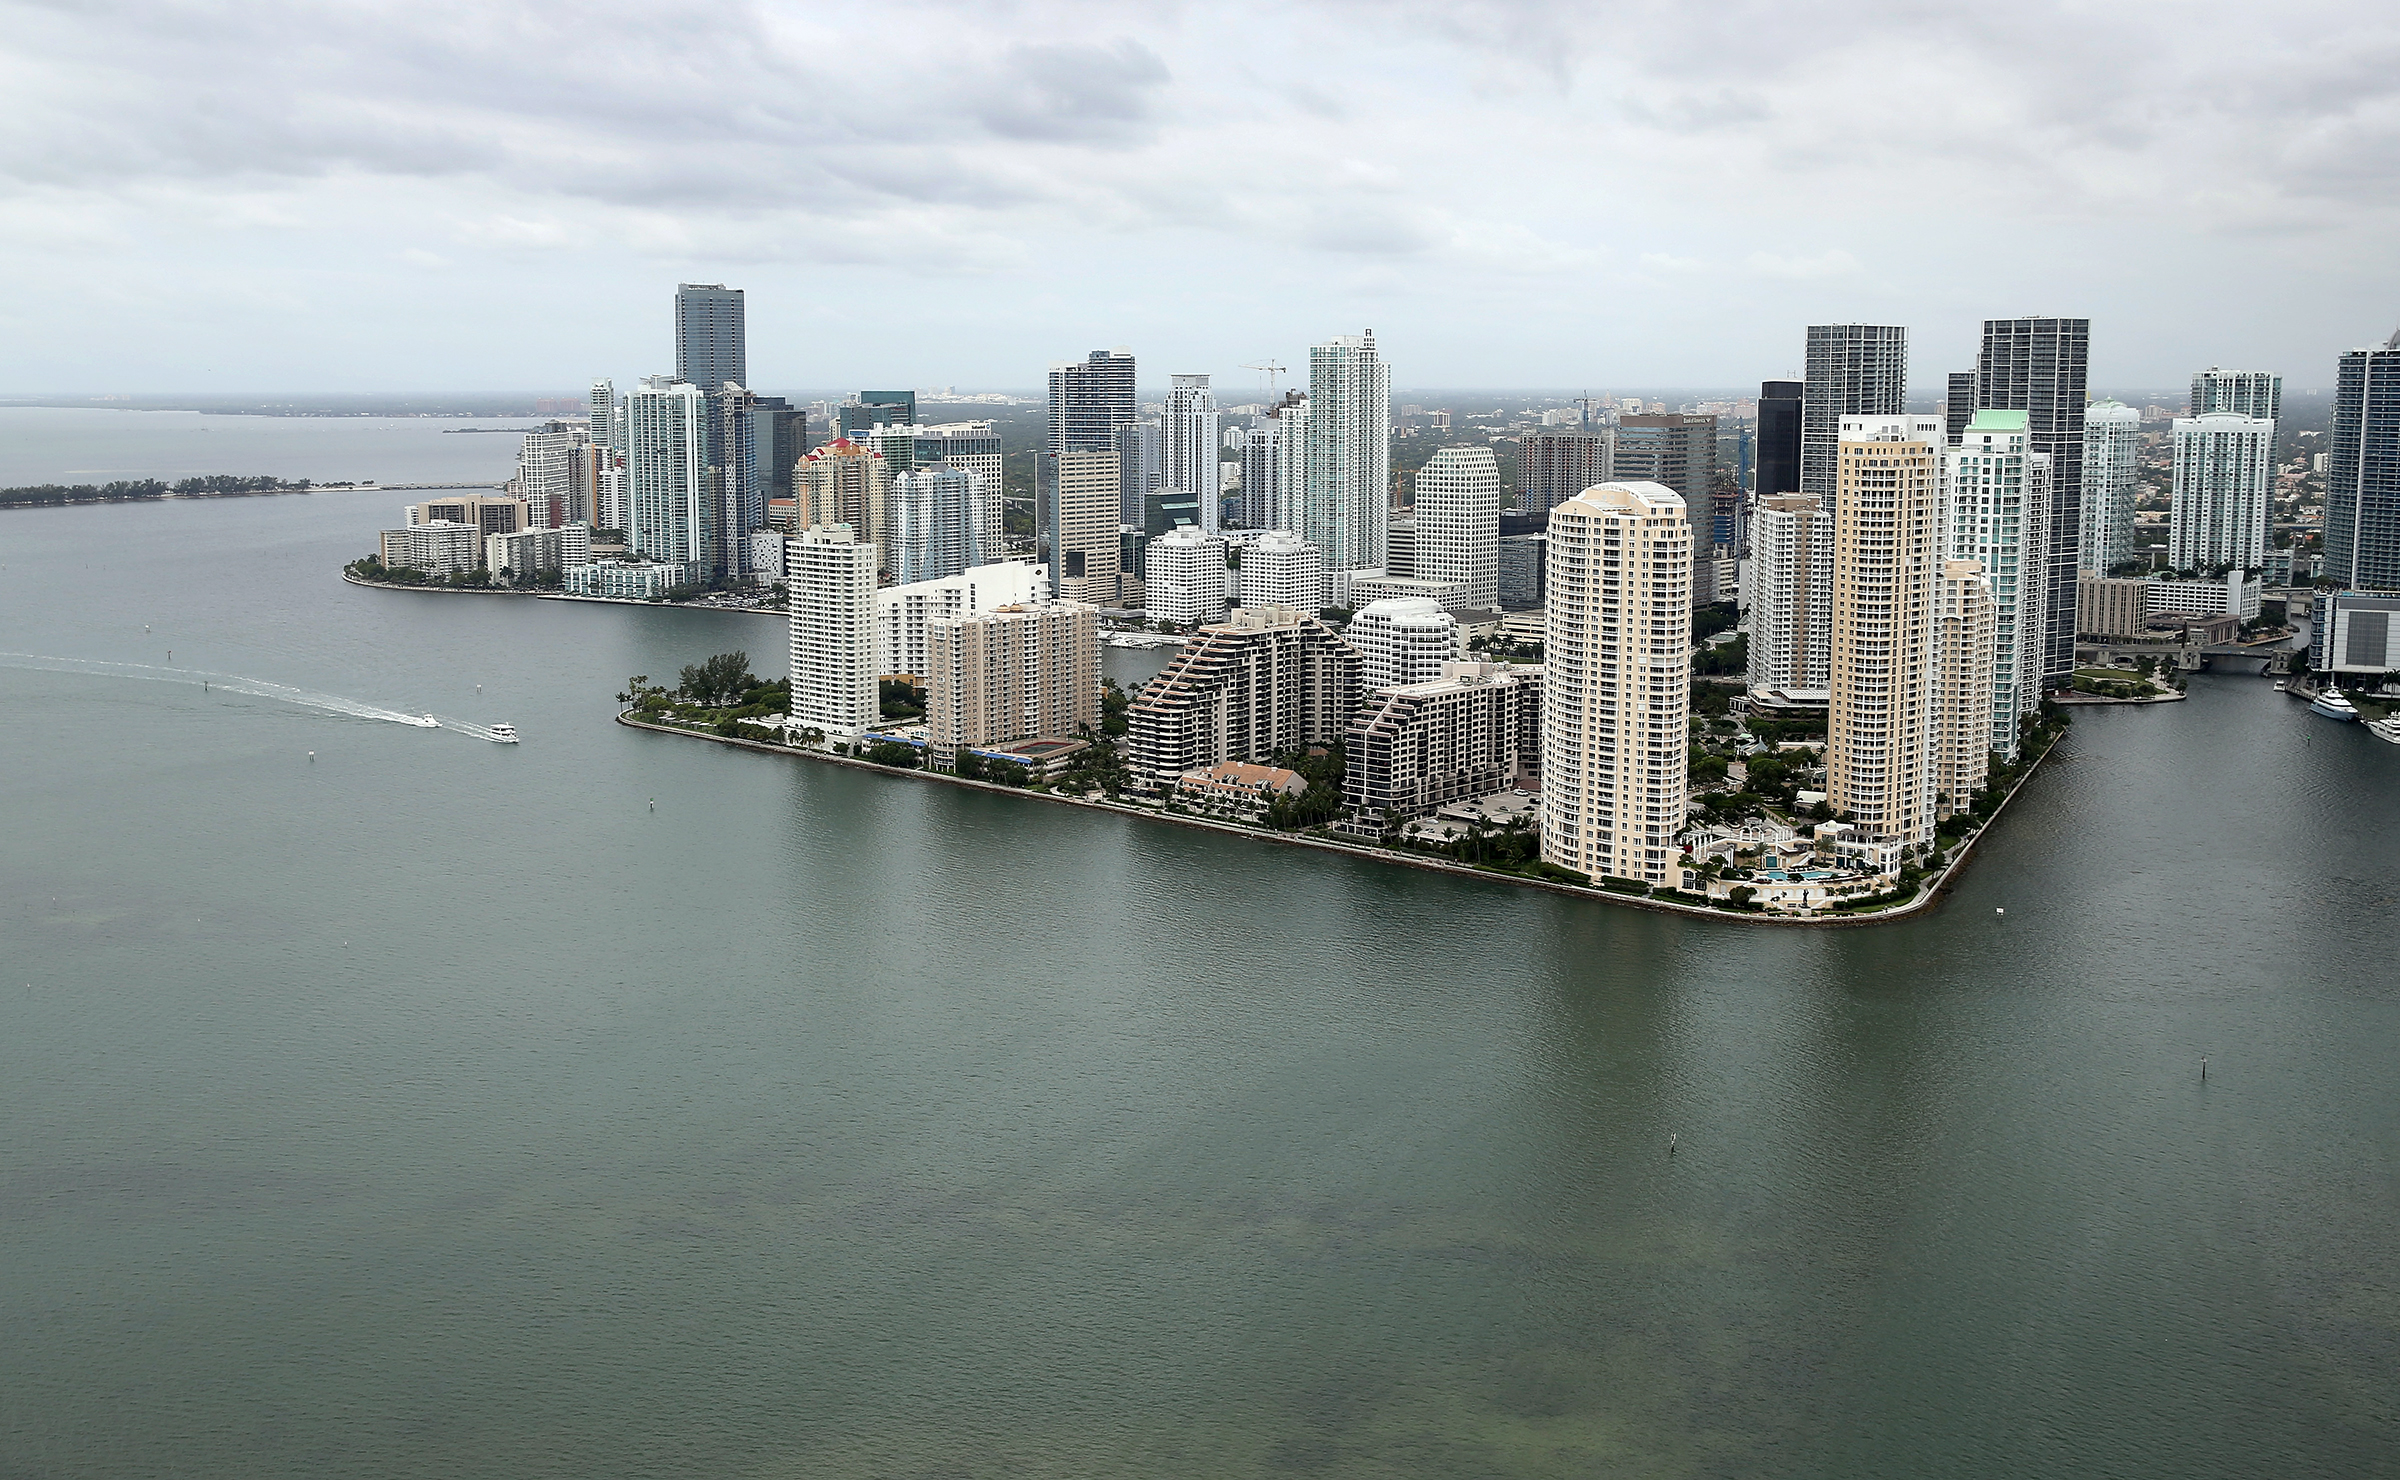 MIAMI, FL - JUNE 03:  Waterfront condo buildings are seen June 3, 2014 in Miami, Florida. According to numerous scientists, south Florida could be flooded by the end of the century as global warming continues to melt the Arctic ice, in turn causing oceans to rise. U.S. President Barack Obama and the Environmental Protection Agency yesterday announced a rule that would reduce the nation's biggest source of pollution, carbon emissions from power plants, 30% by 2030 compared to the 2005 levels.  It is widely believed that these emissions are a main cause of global warming. (Photo by Joe Raedle/Getty Images)